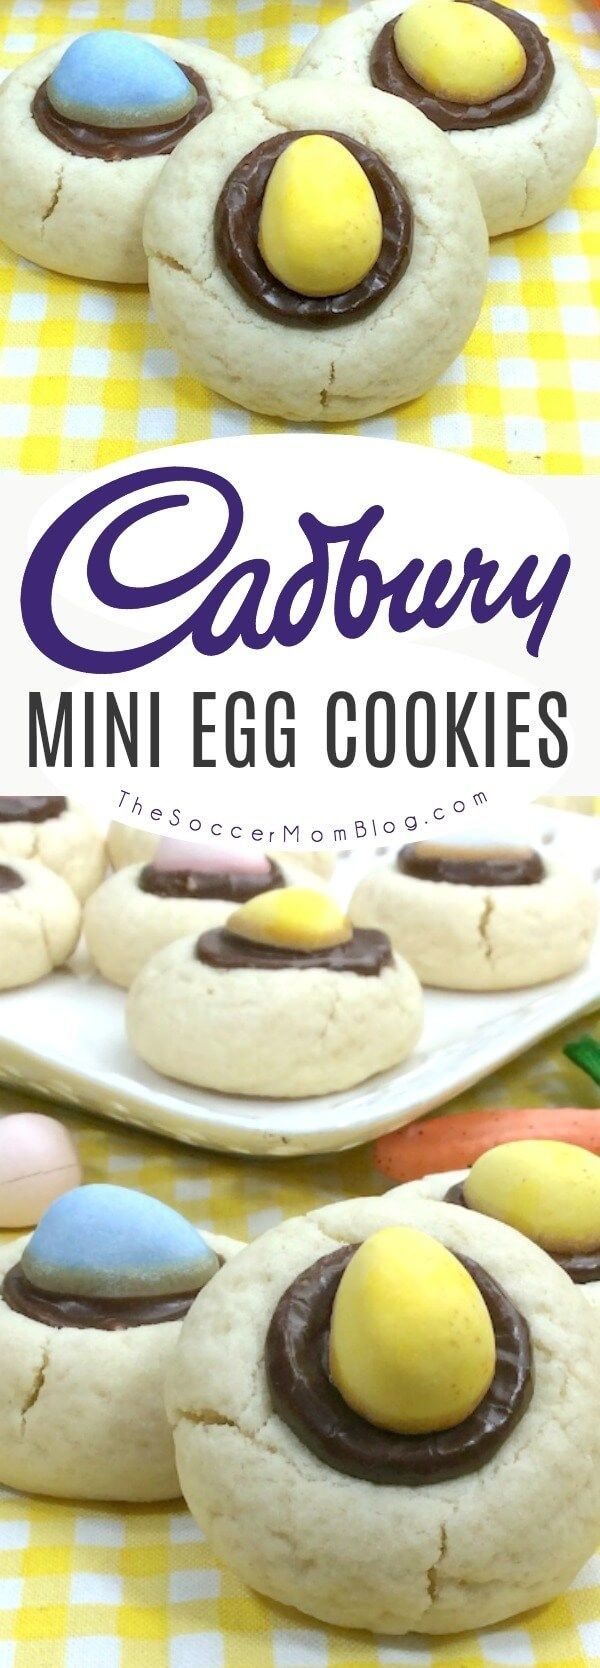 Mini Cadbury Egg Cookies are a festive thumbprint cookie just for Easter! The perfect bite-sized spring treat to make for family celebrations, classroom parties, or just for fun! #Easter #cookies